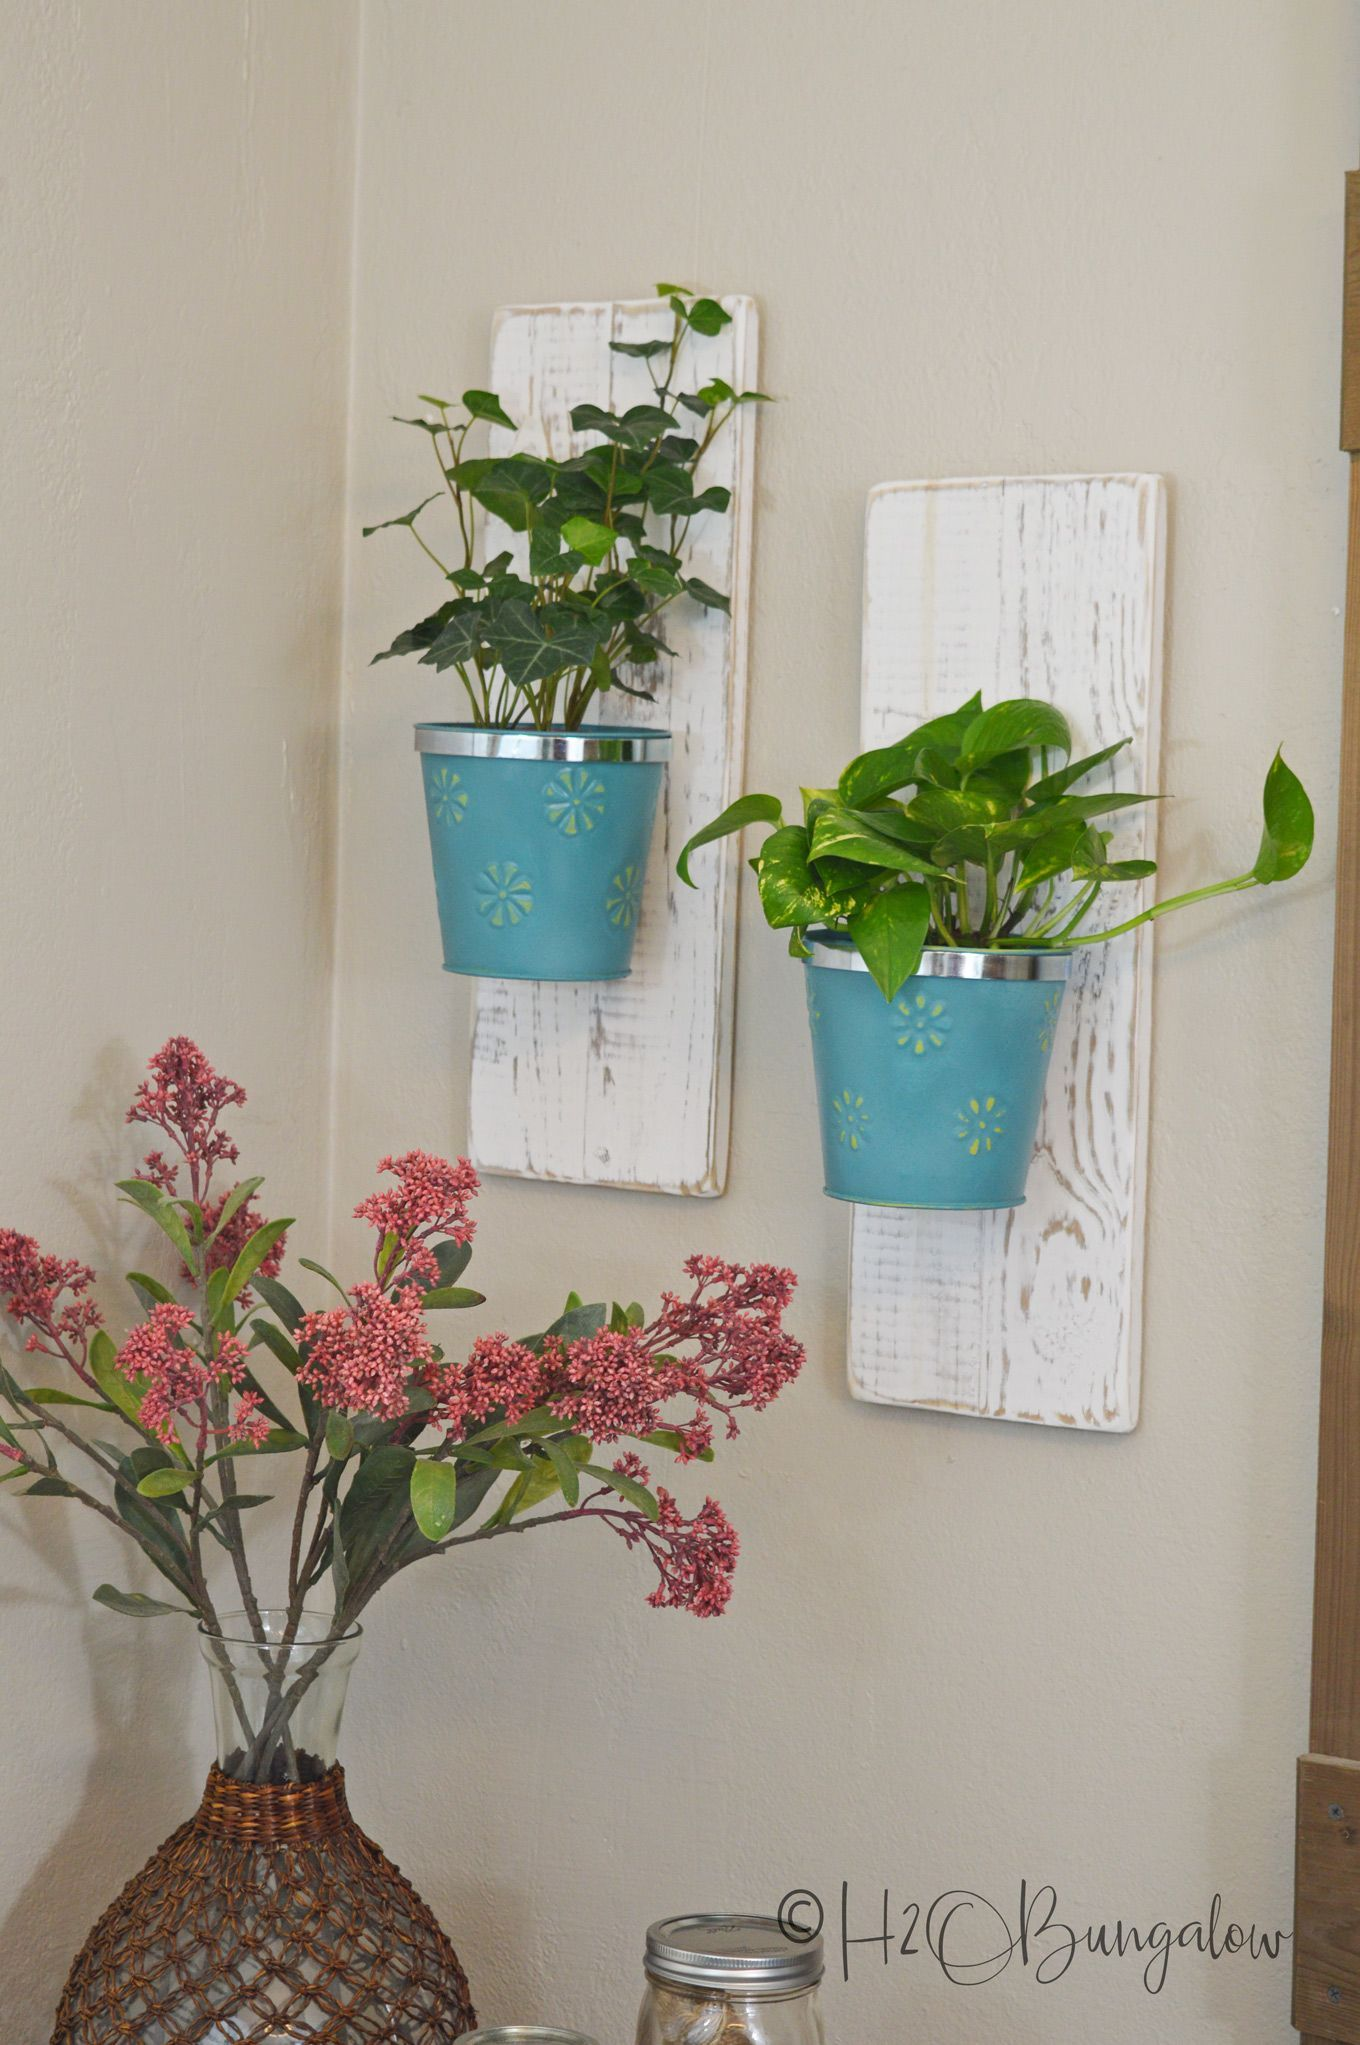 20 Diy Hanging Planters How To Make A Hanging Planter